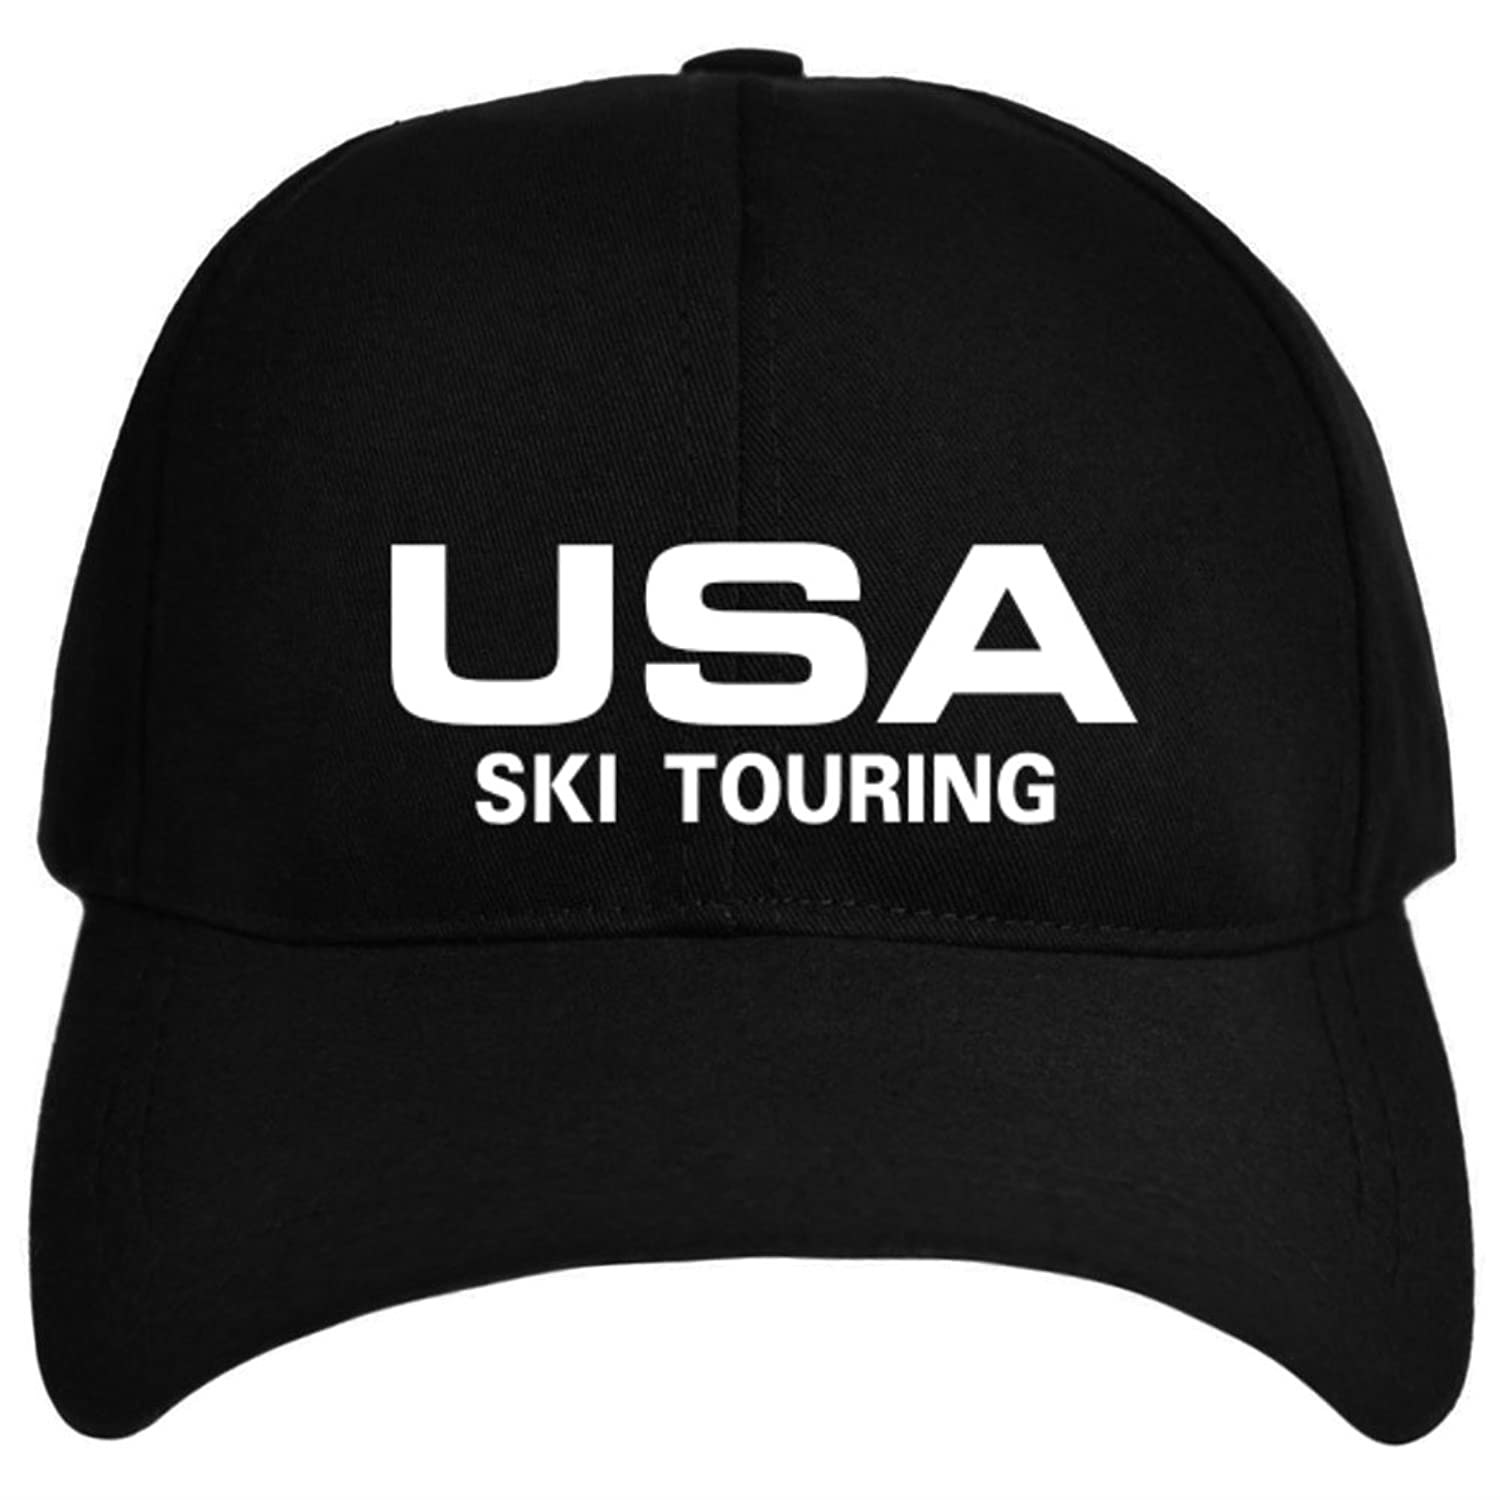 USA Ski Touring ATHLETIC AMERICA Cap